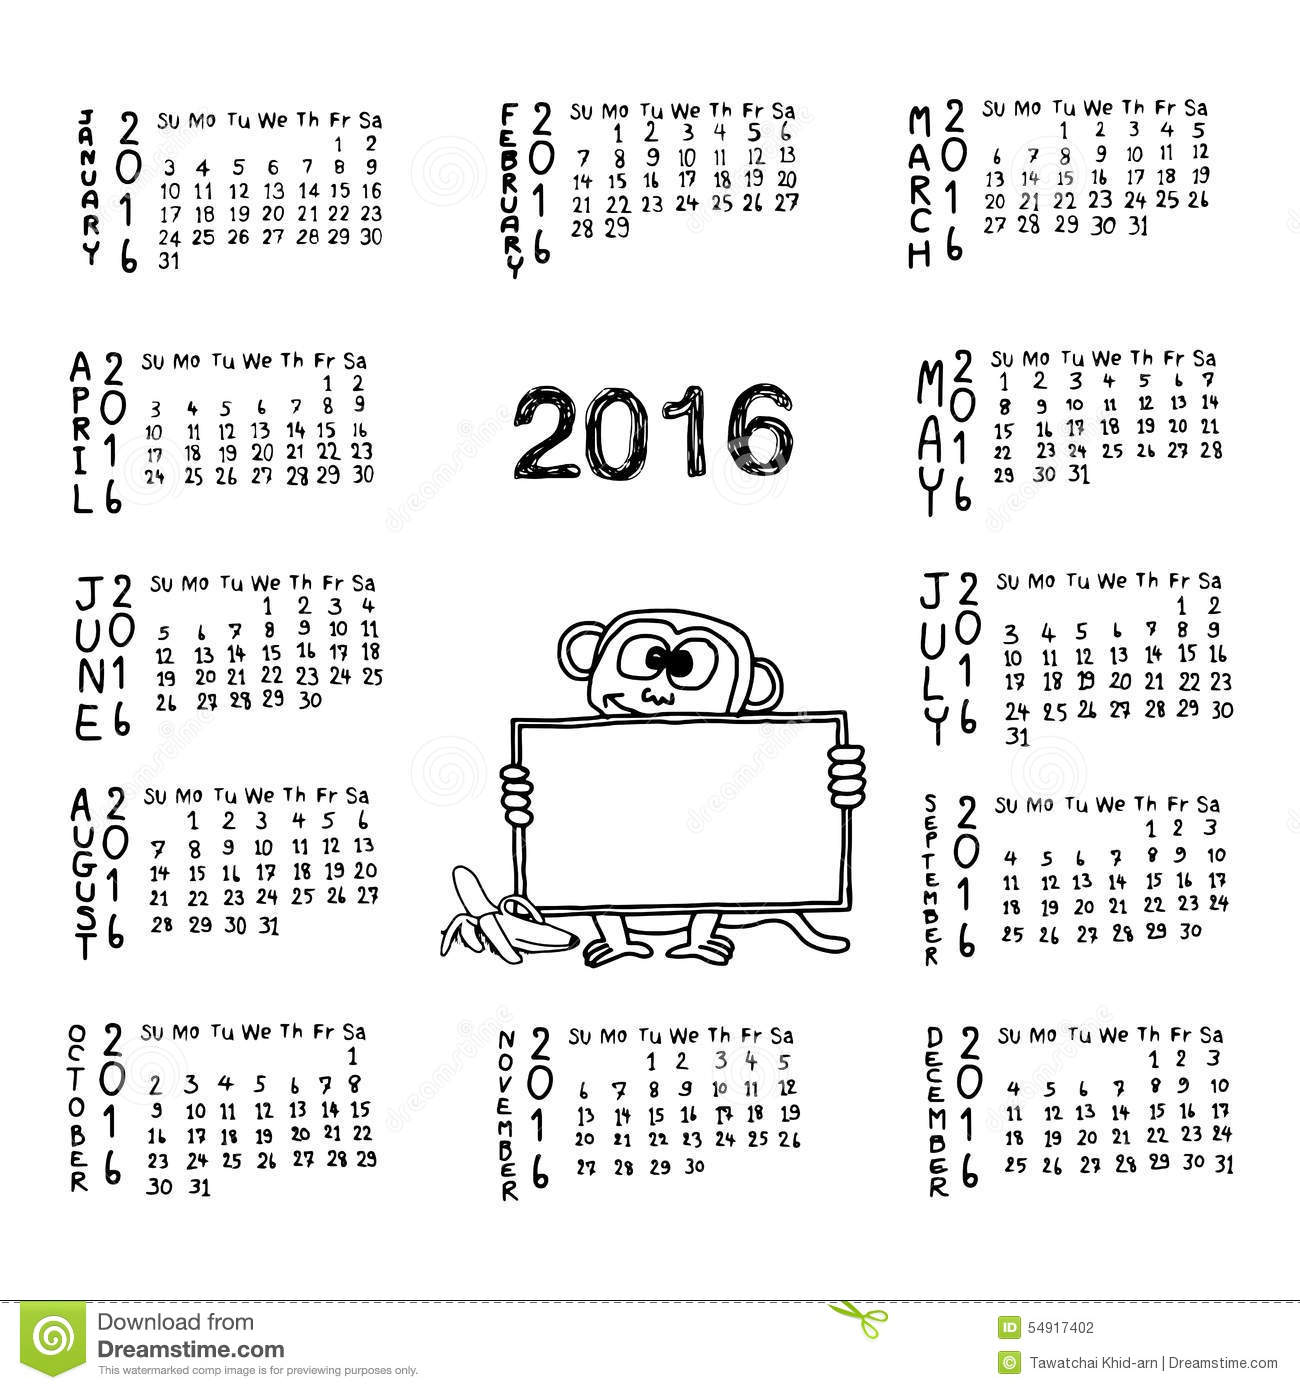 Calendar Illustration Board : Doodles of calendar for with monkey holding white